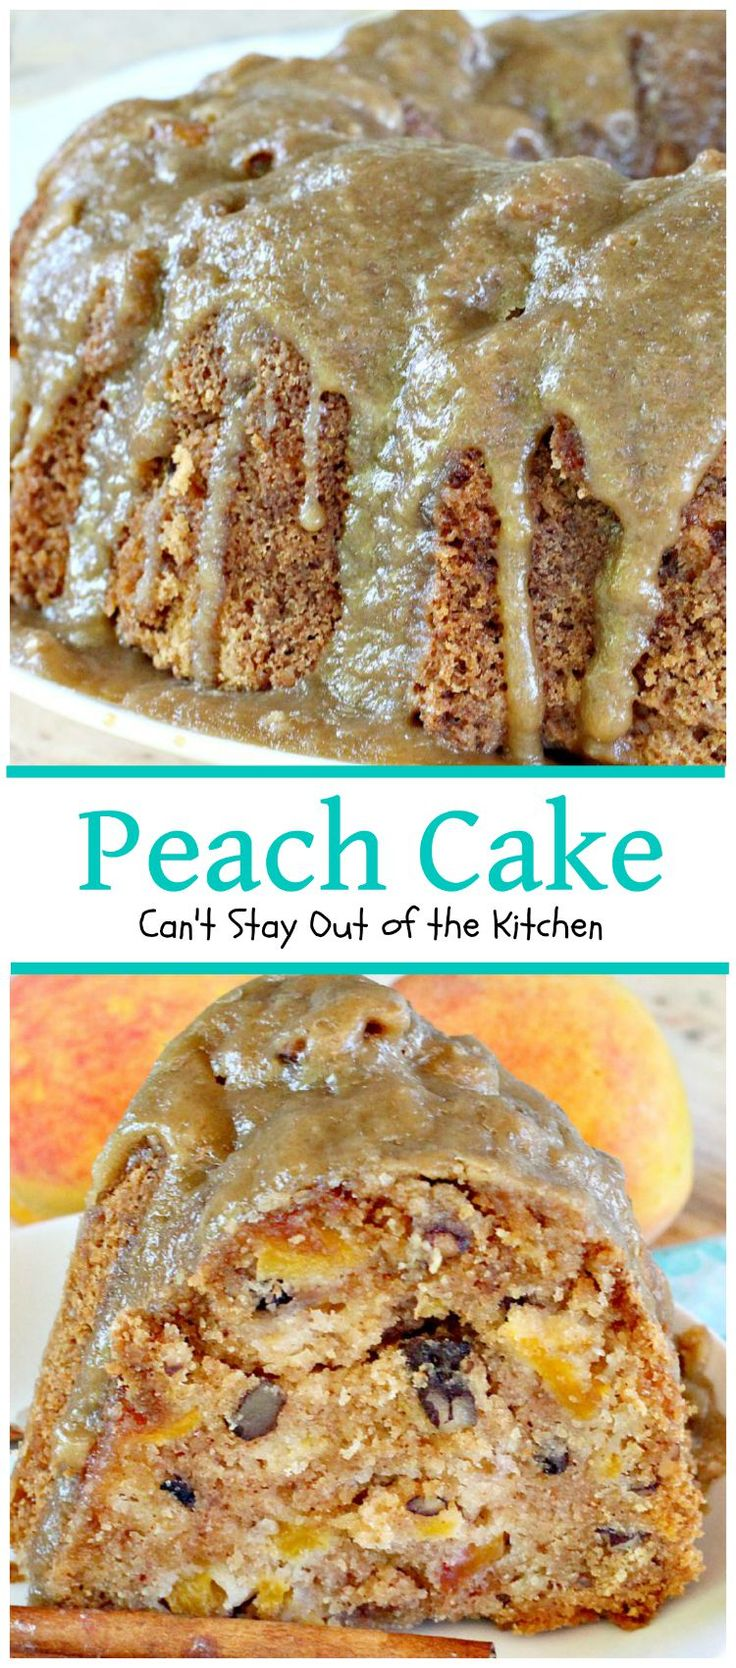 Peach Cake | Can't Stay Out of the Kitchen | spectacular #cake made with #peaches and #pecans. This one has a scrumptious brown sugar glaze.